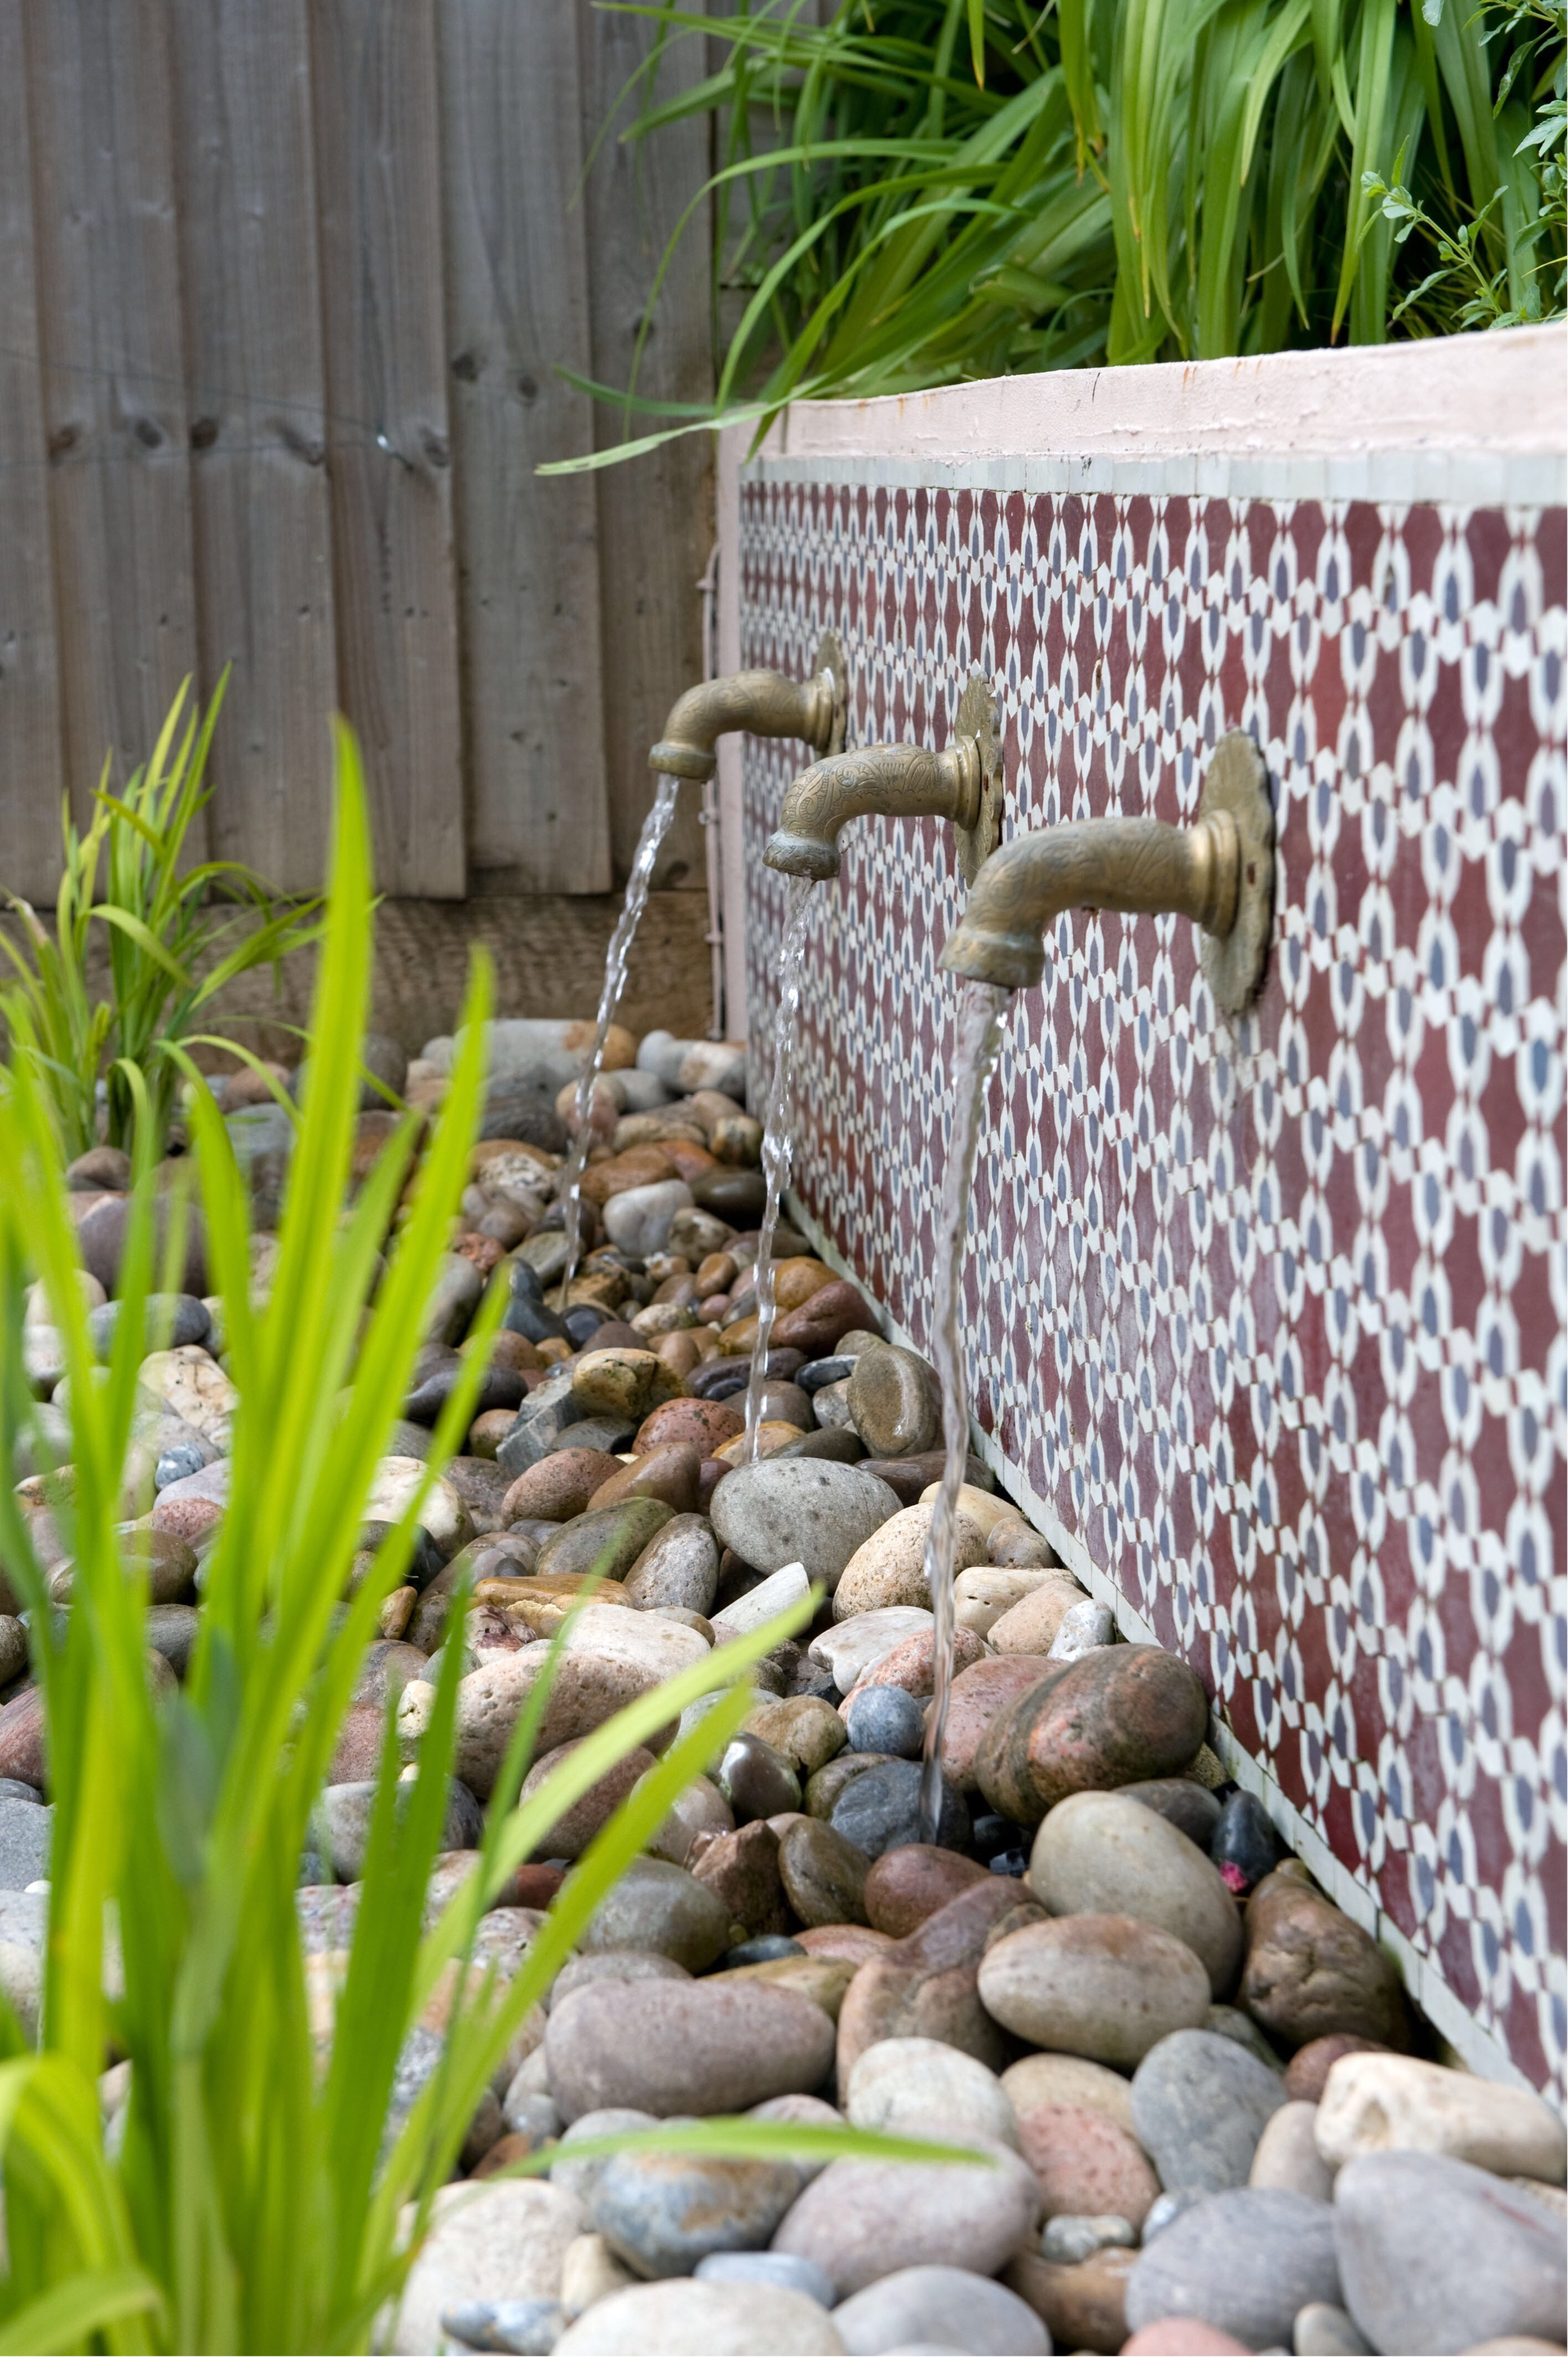 Garden water feature design tips - wall mounted ones are popular